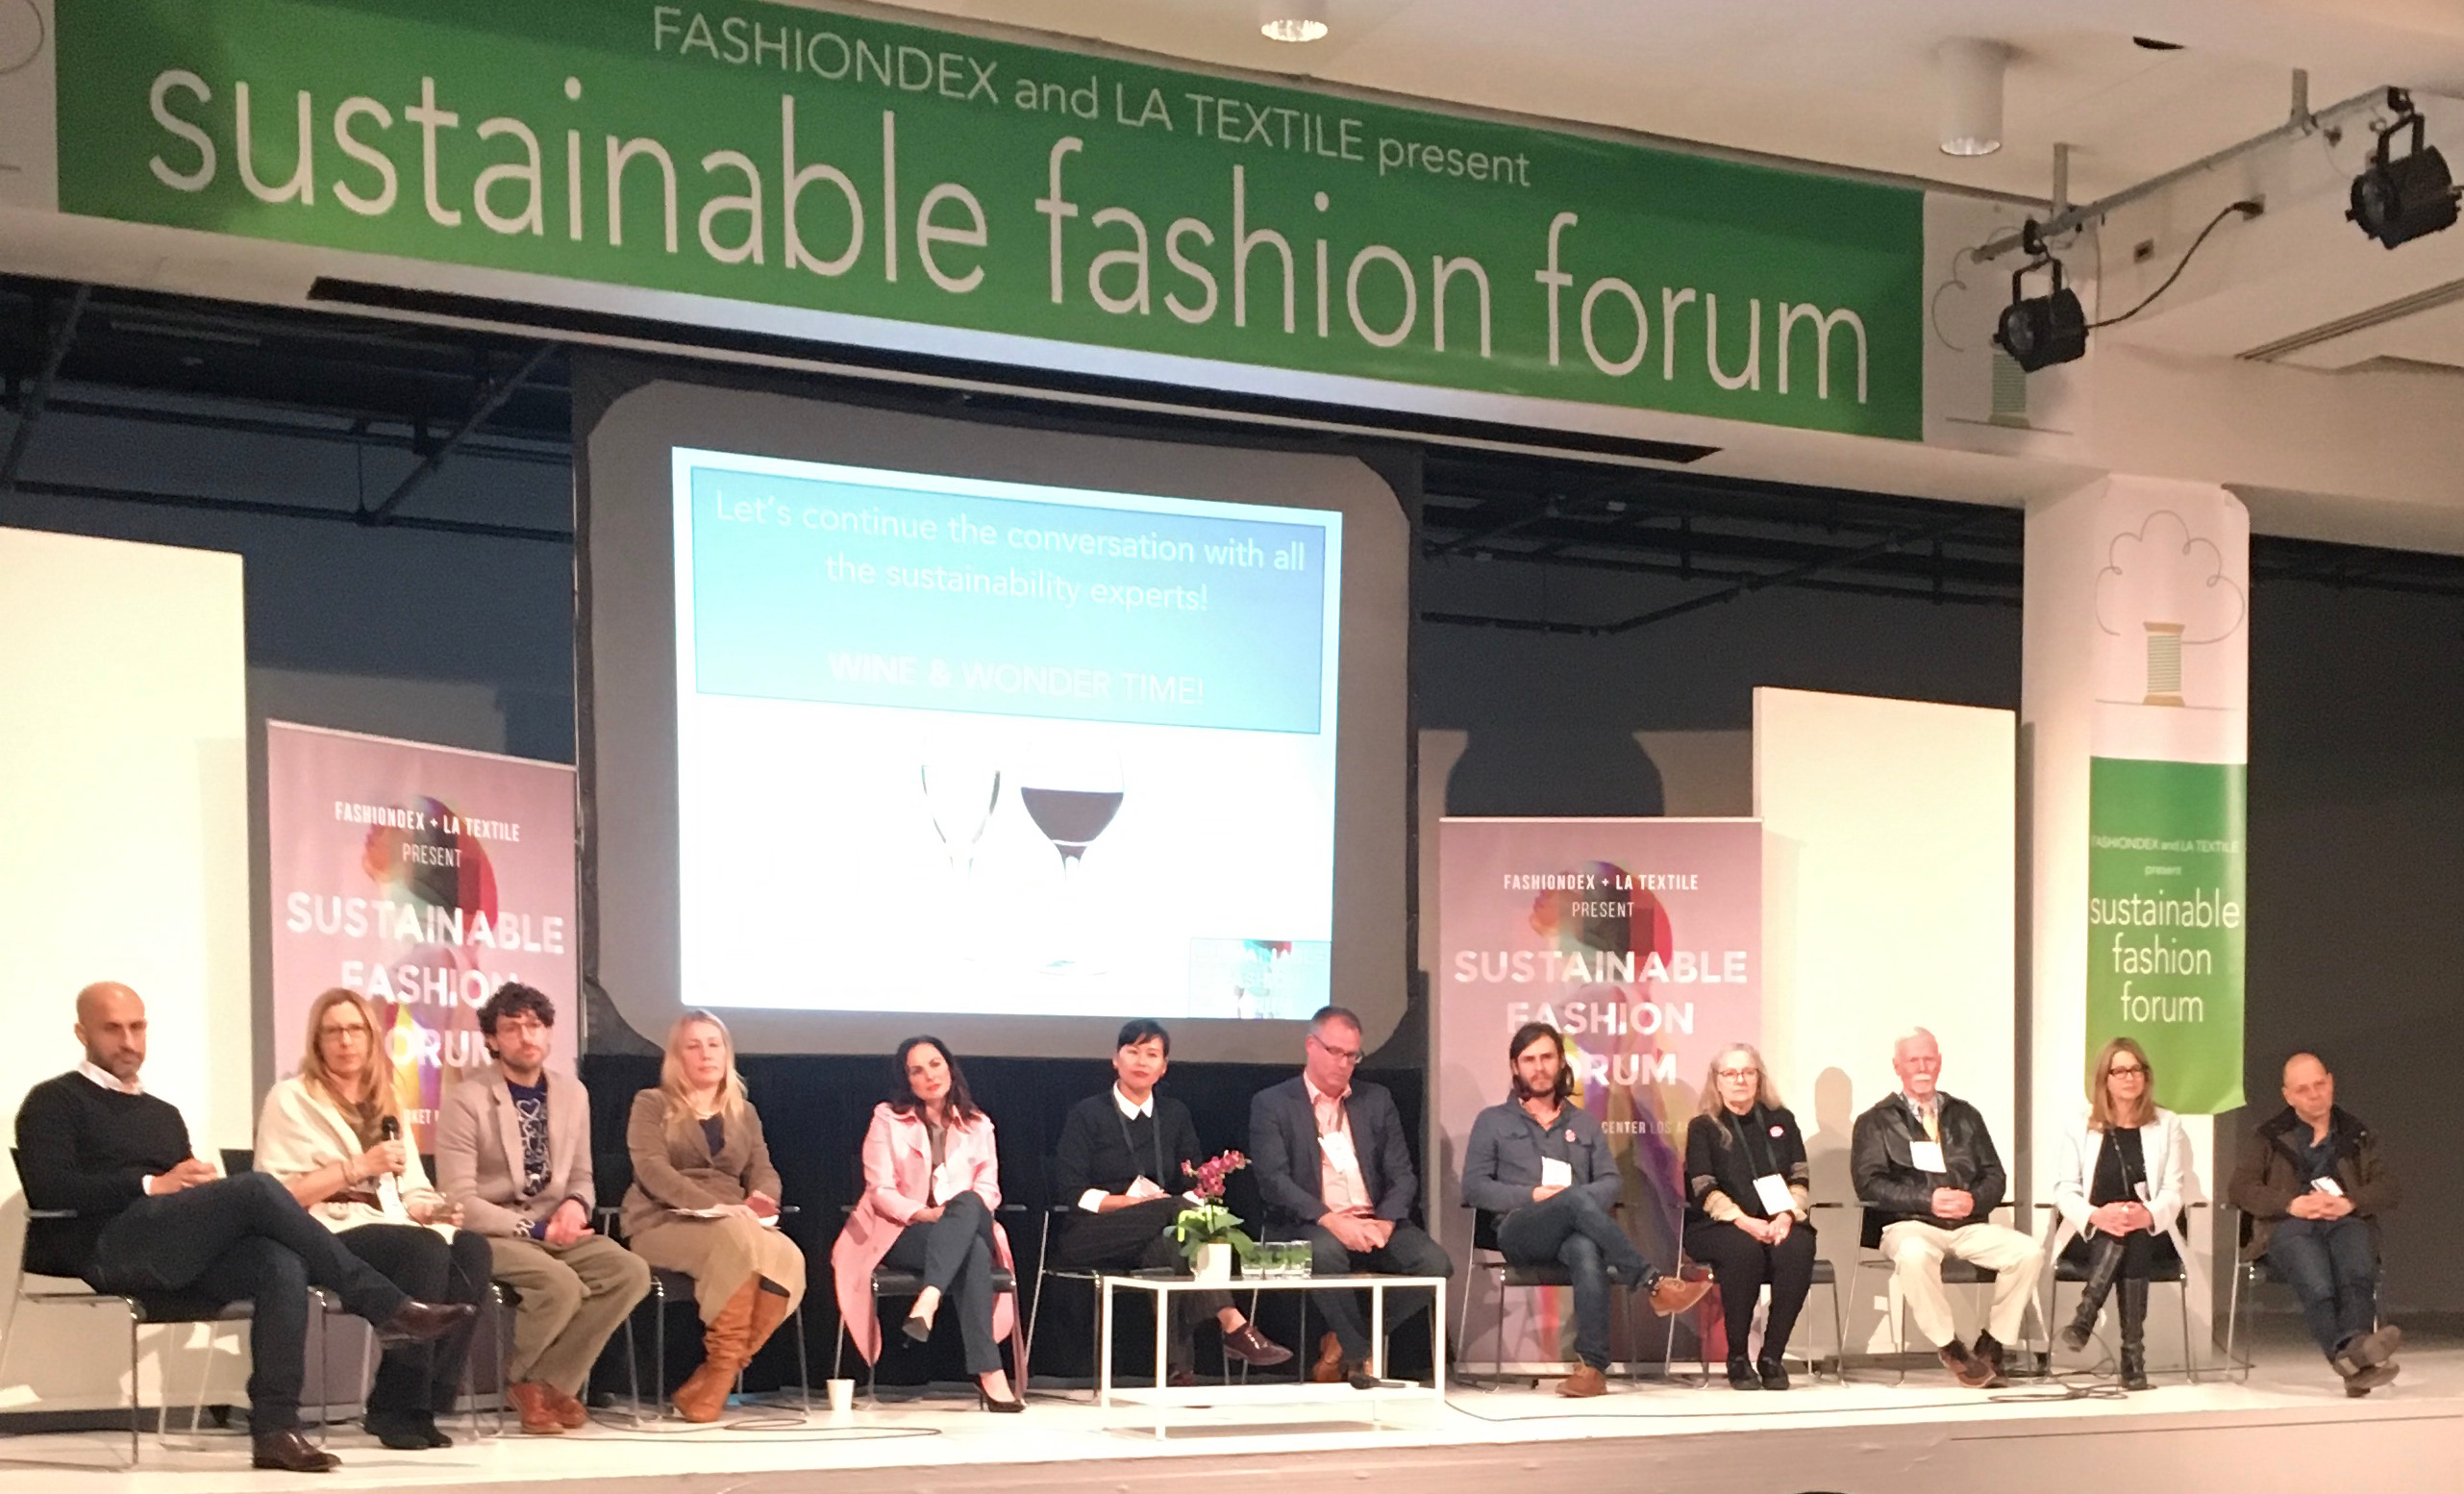 LA sustainable forum